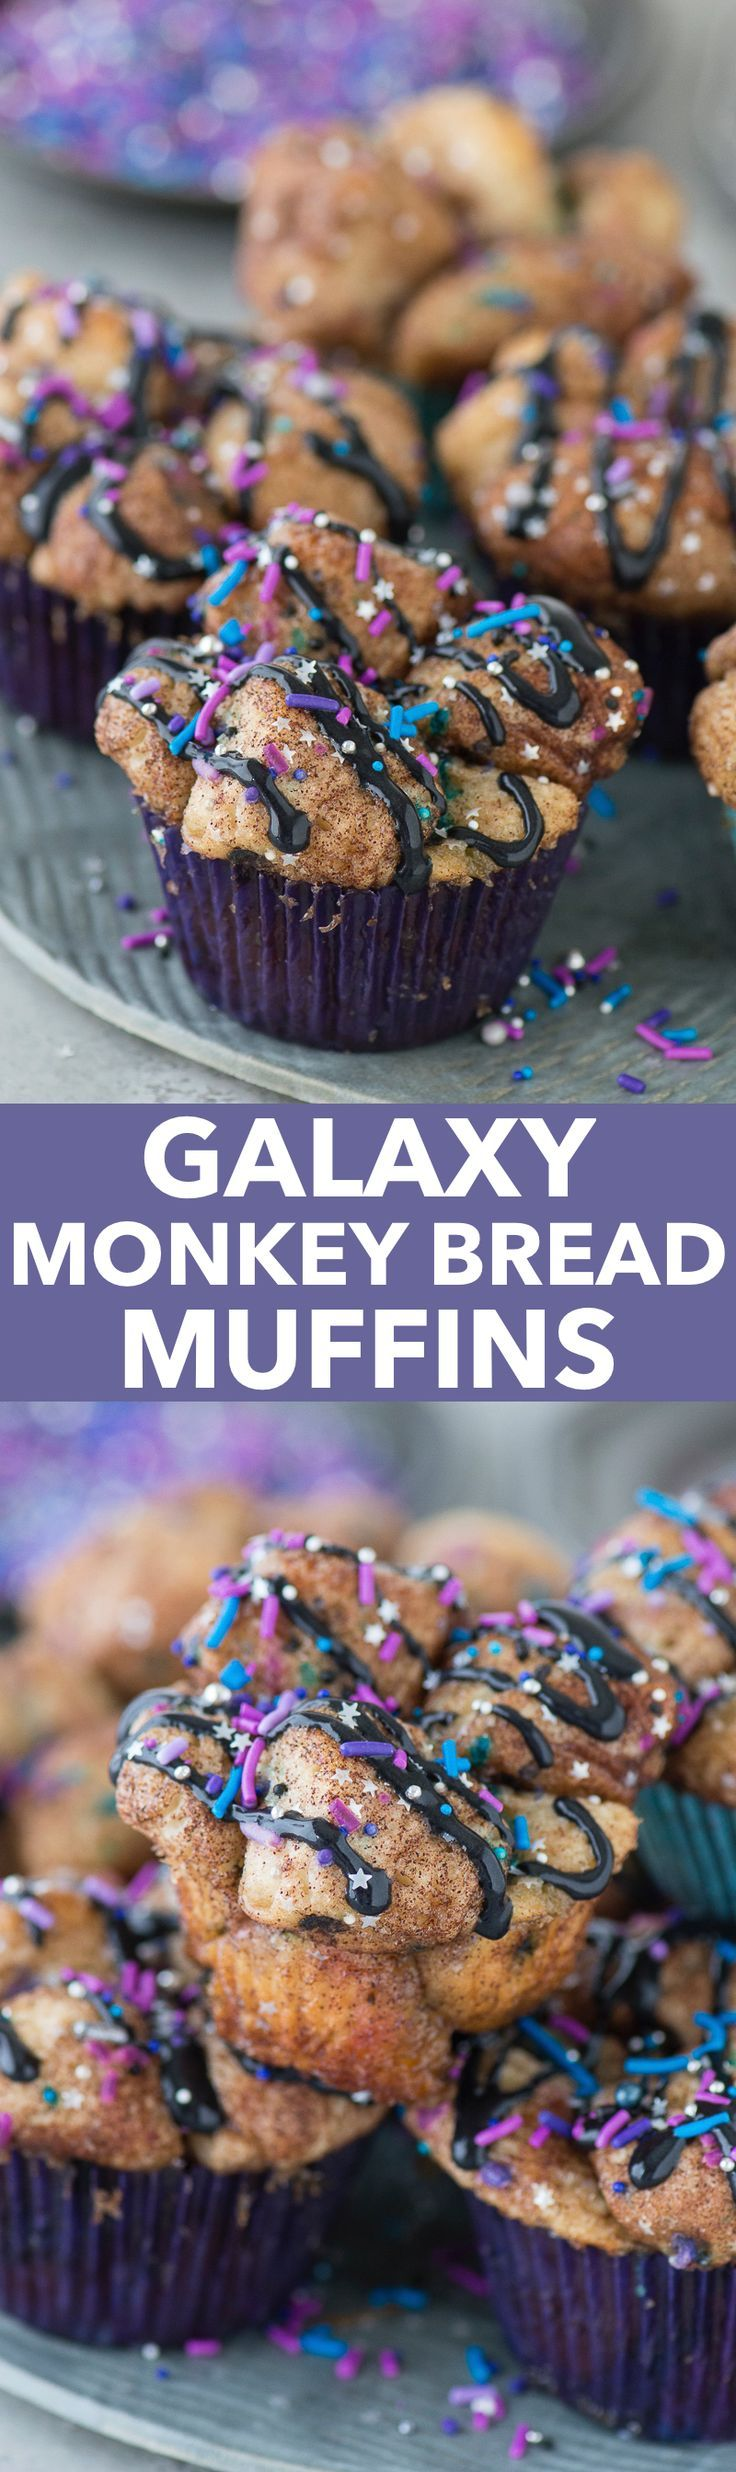 Monkey bread turned into muffins with galaxy sprinkles and black cream ...